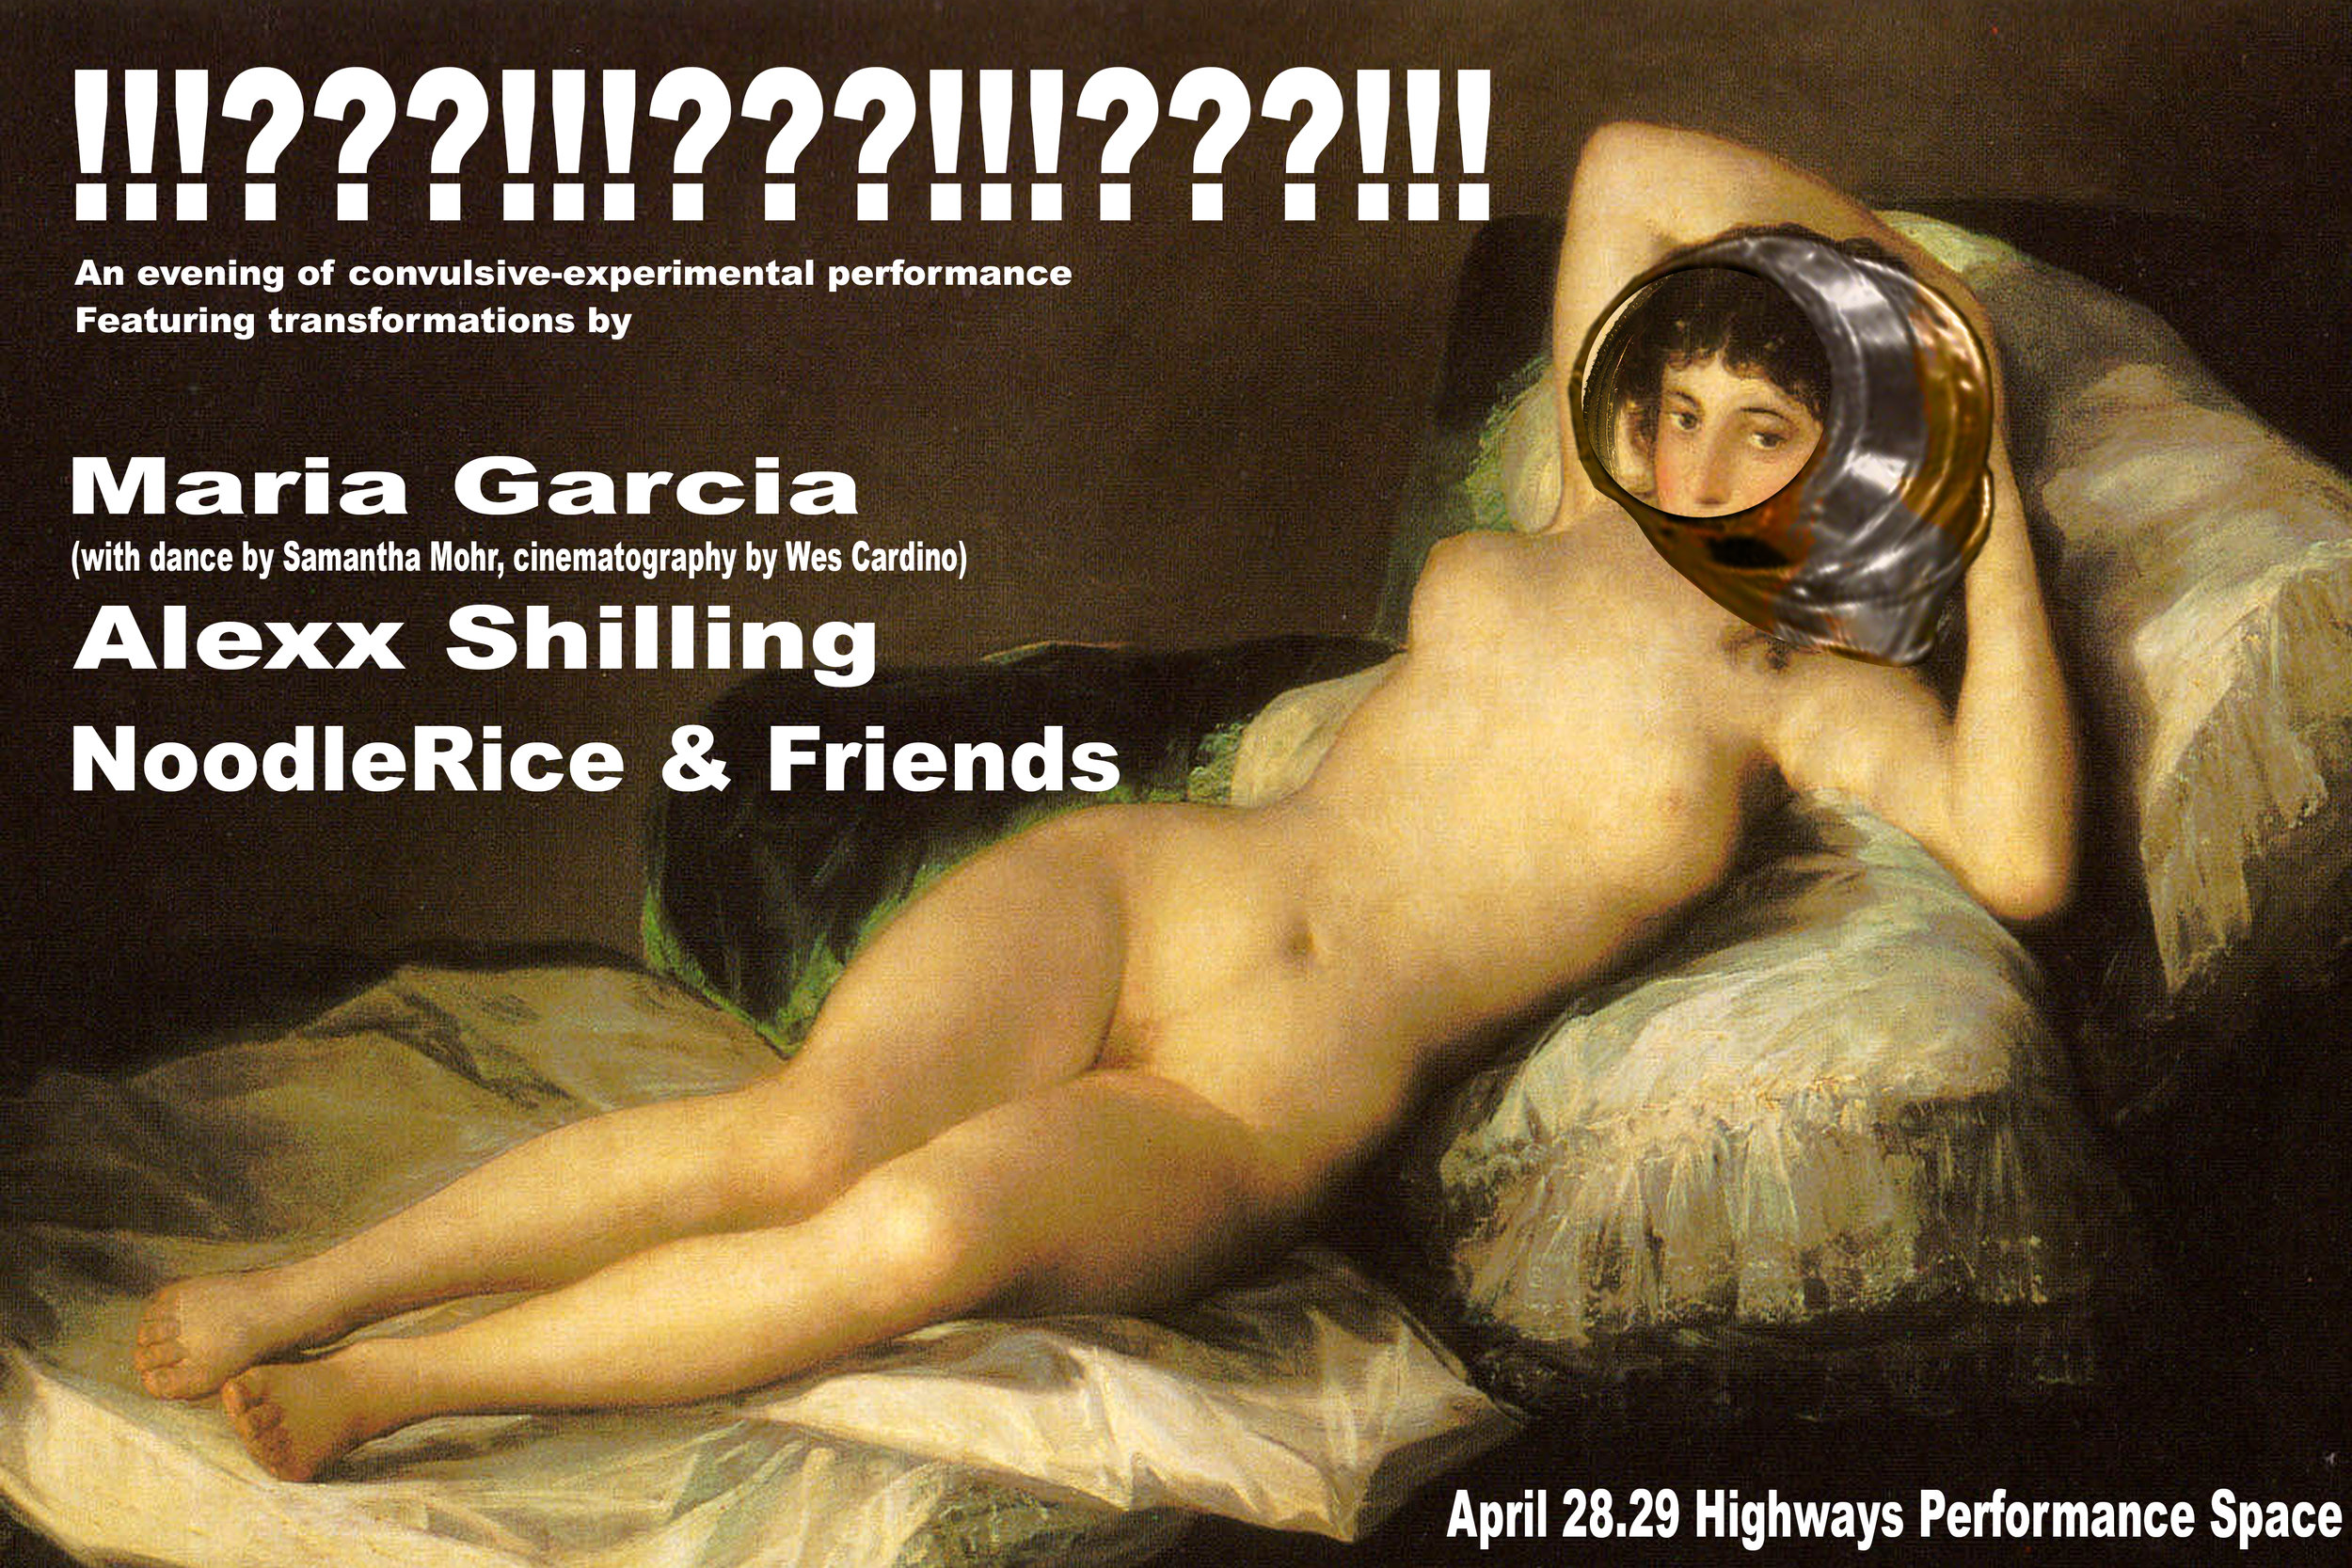 !!!???!!!???!!!???!!! - April 28.29, 2019@Highways Performance SpaceAn evening of convulsive-experimental performanceUntitled 16 by NoodleRice & Friends